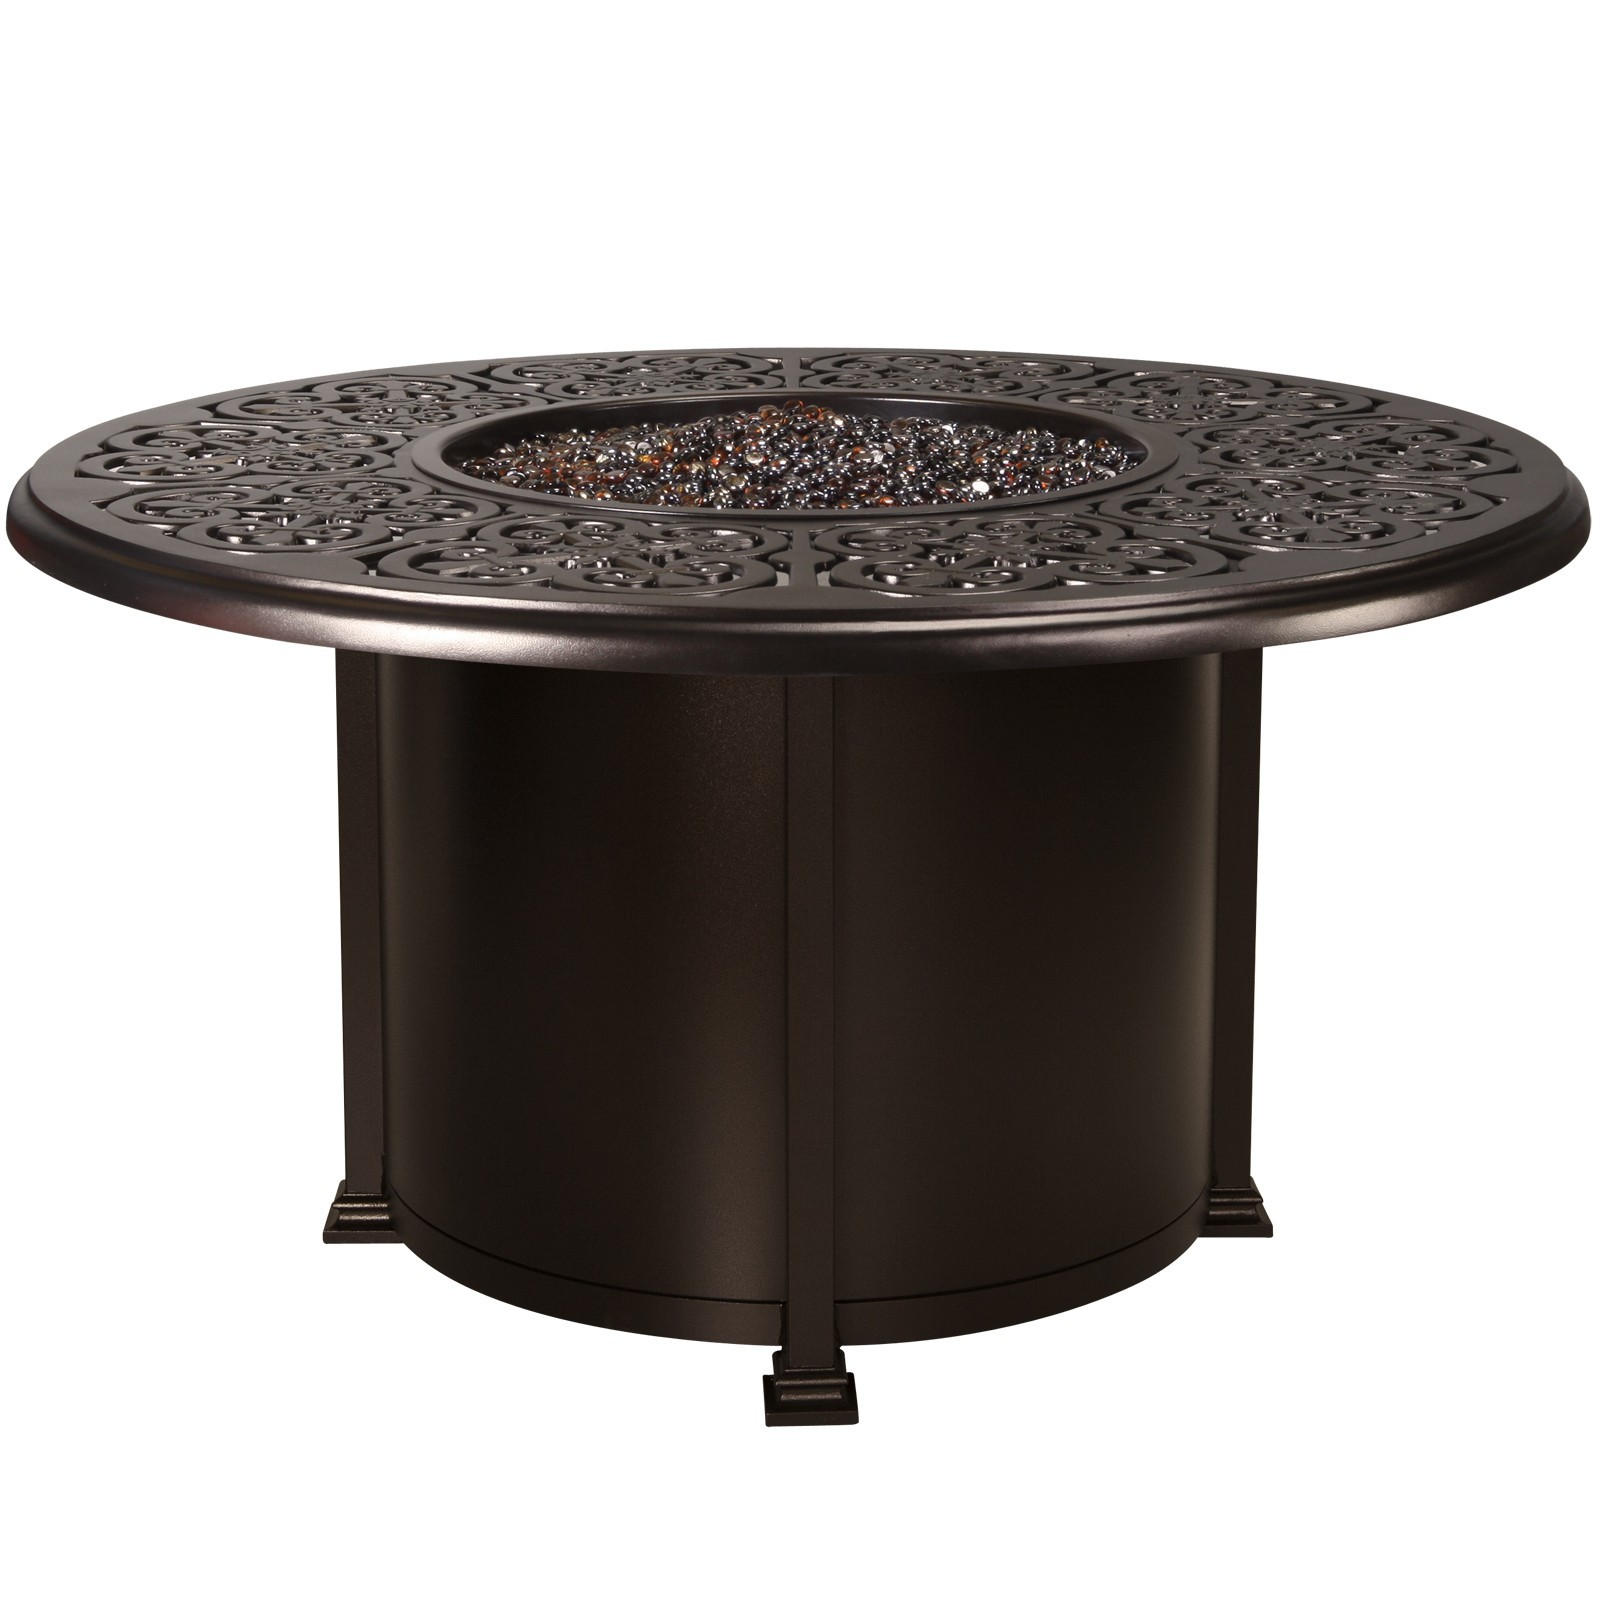 "Fire Pits 54"" Round Dining Height Fire Pit"